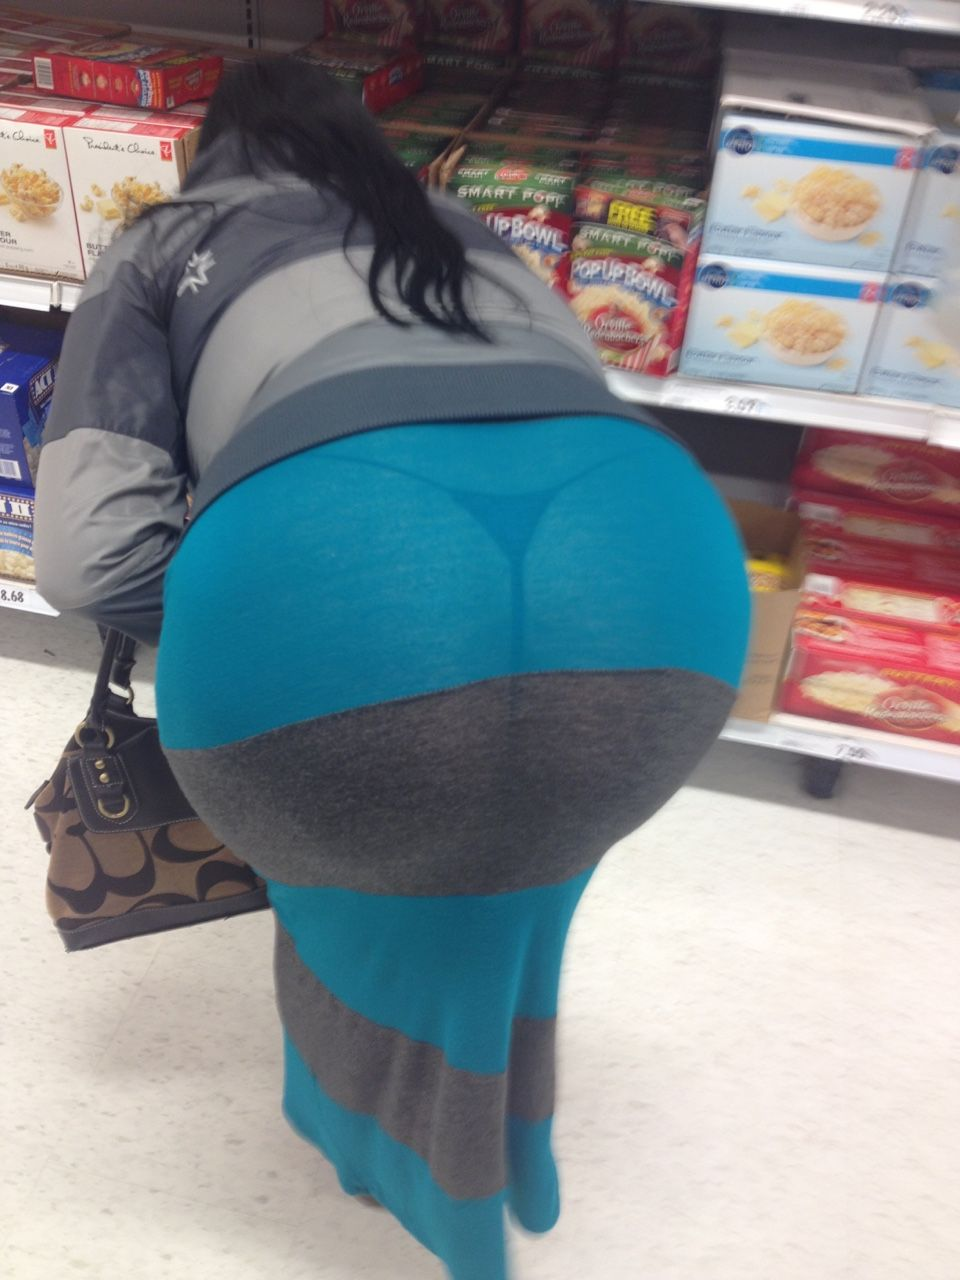 bigdaddy337: sultrycheyenne65: shopping wow what a beautiful ass